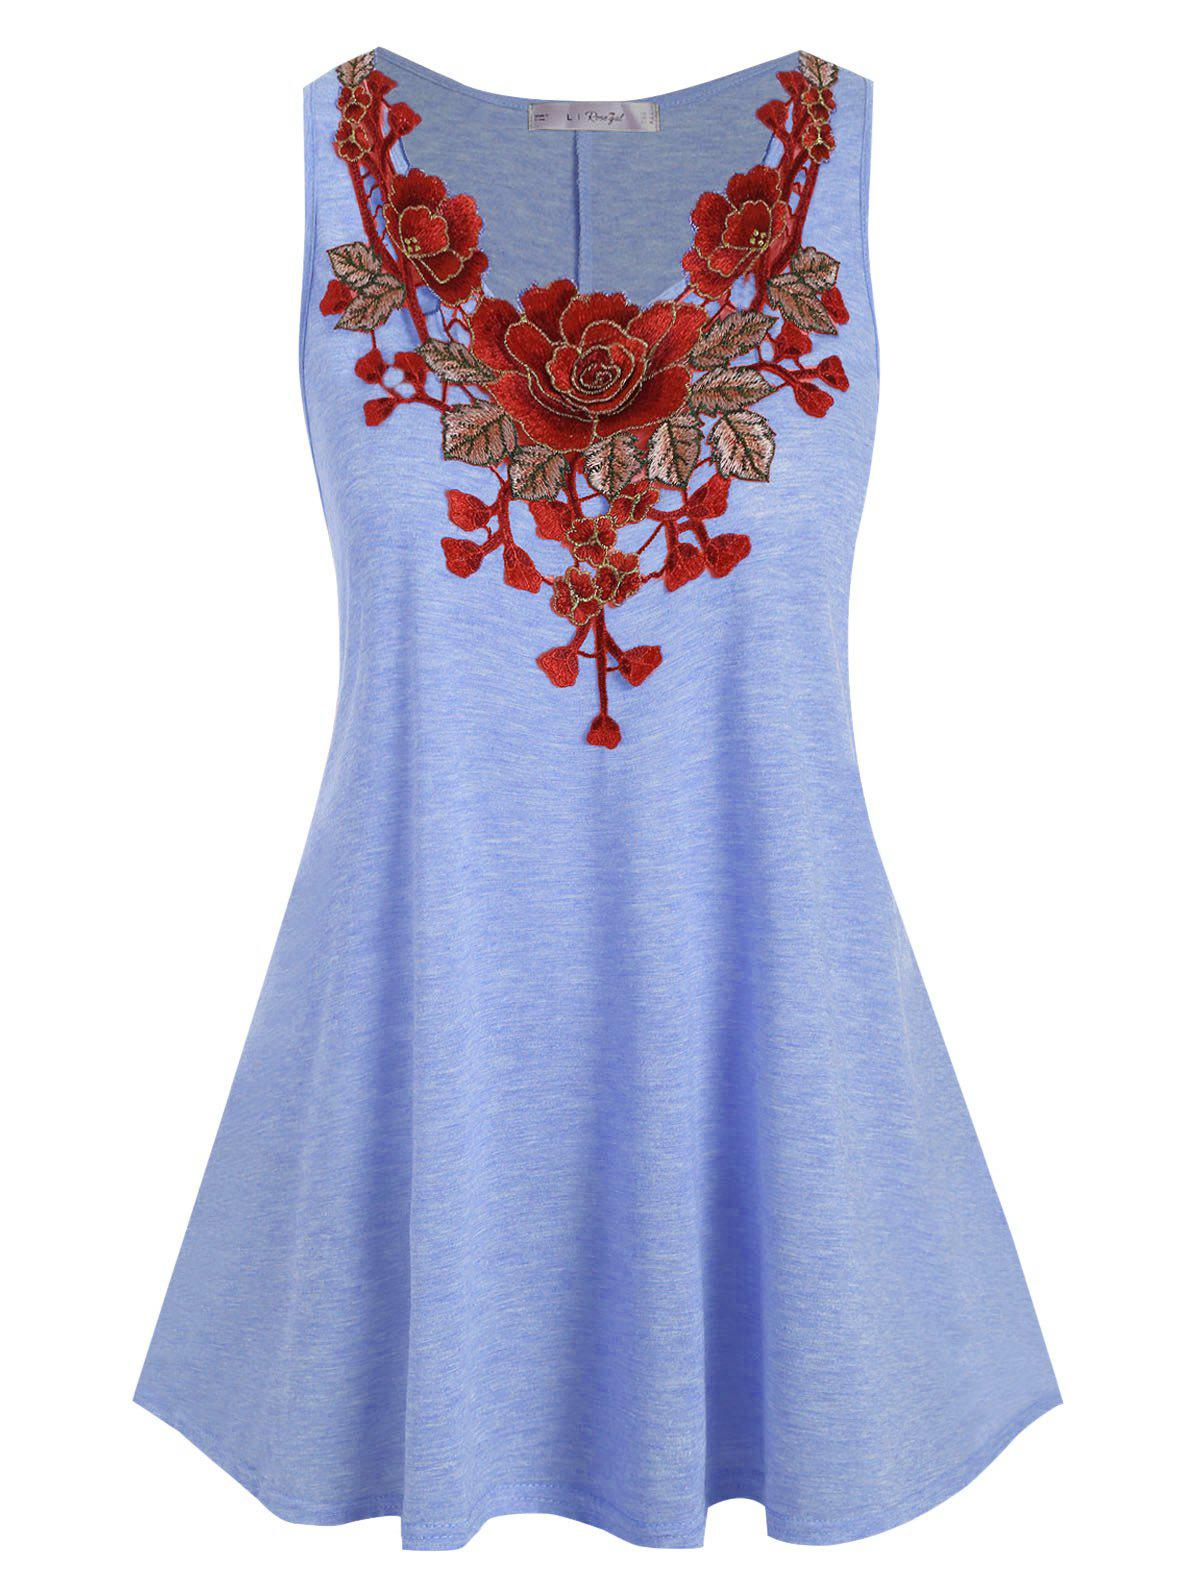 Floral Applique Plus Size Tank Top - LIGHT BLUE 1X